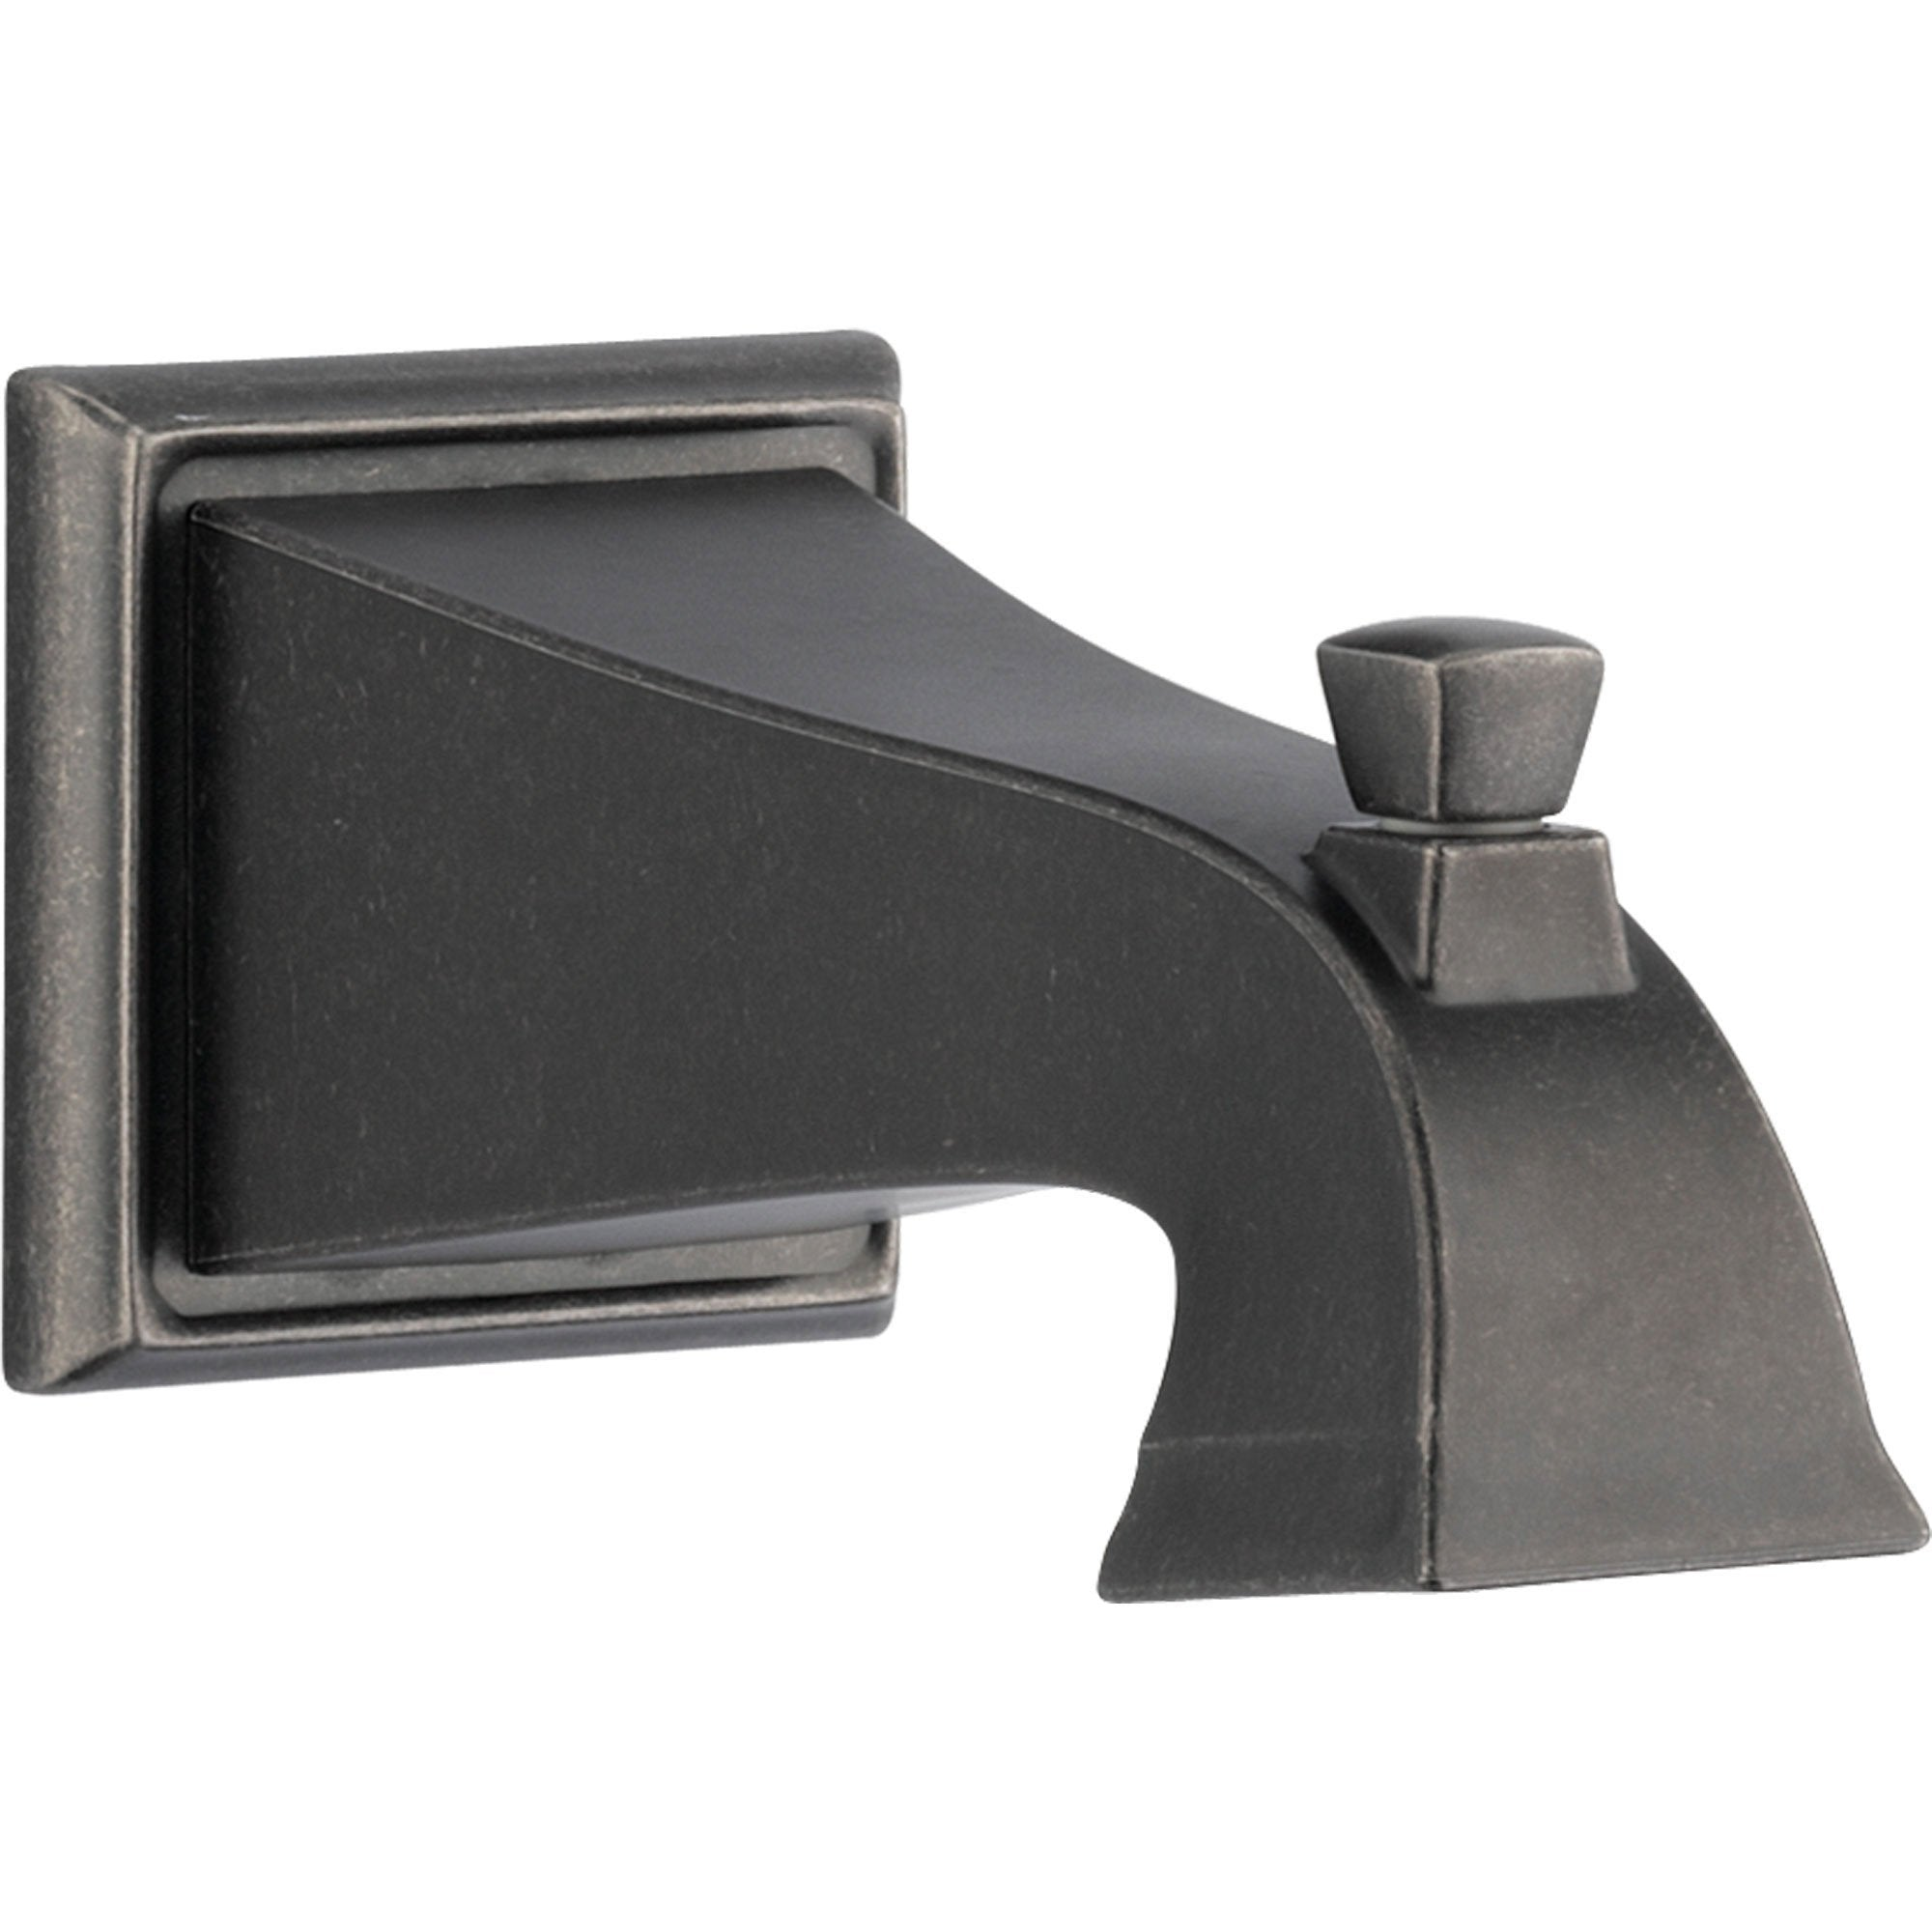 "Delta Dryden Modern 7.5"" Aged Pewter Pull-Up Diverter Tub Spout 590384"